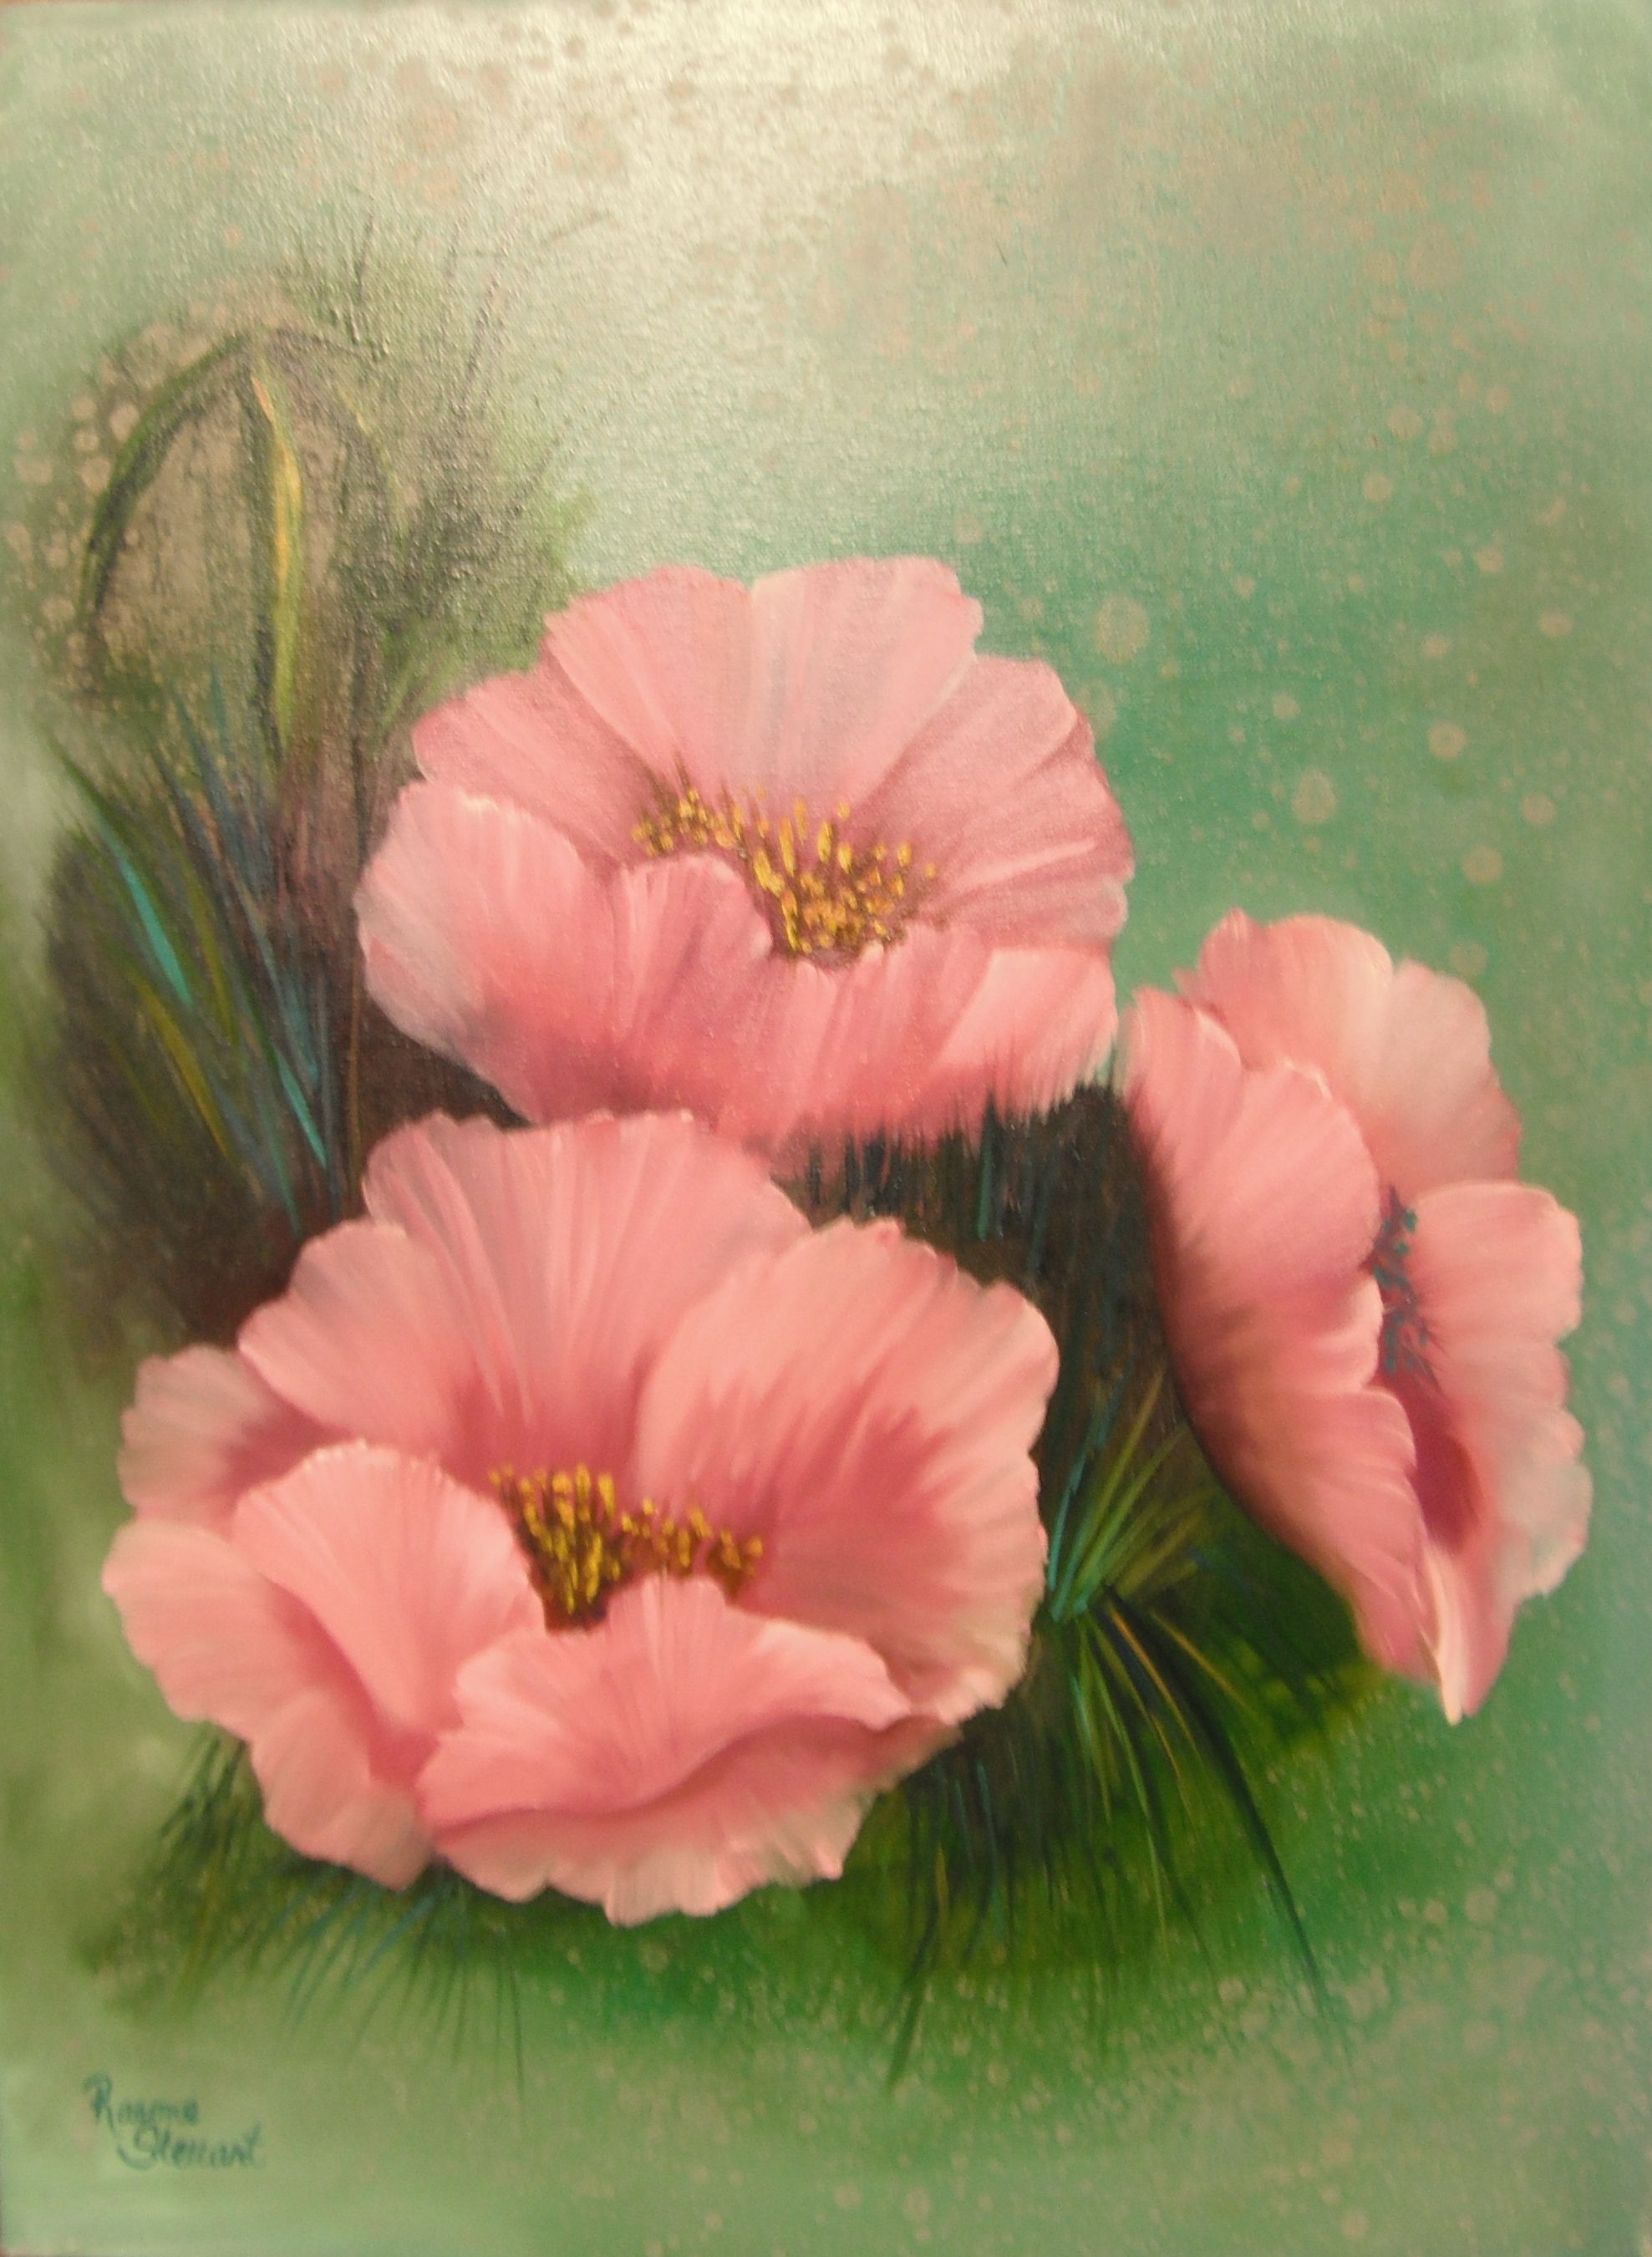 Bob ross beautiful flowers image detail for stus art studio bob ross beautiful flowers image detail for stus art studio certified bob ross izmirmasajfo Image collections